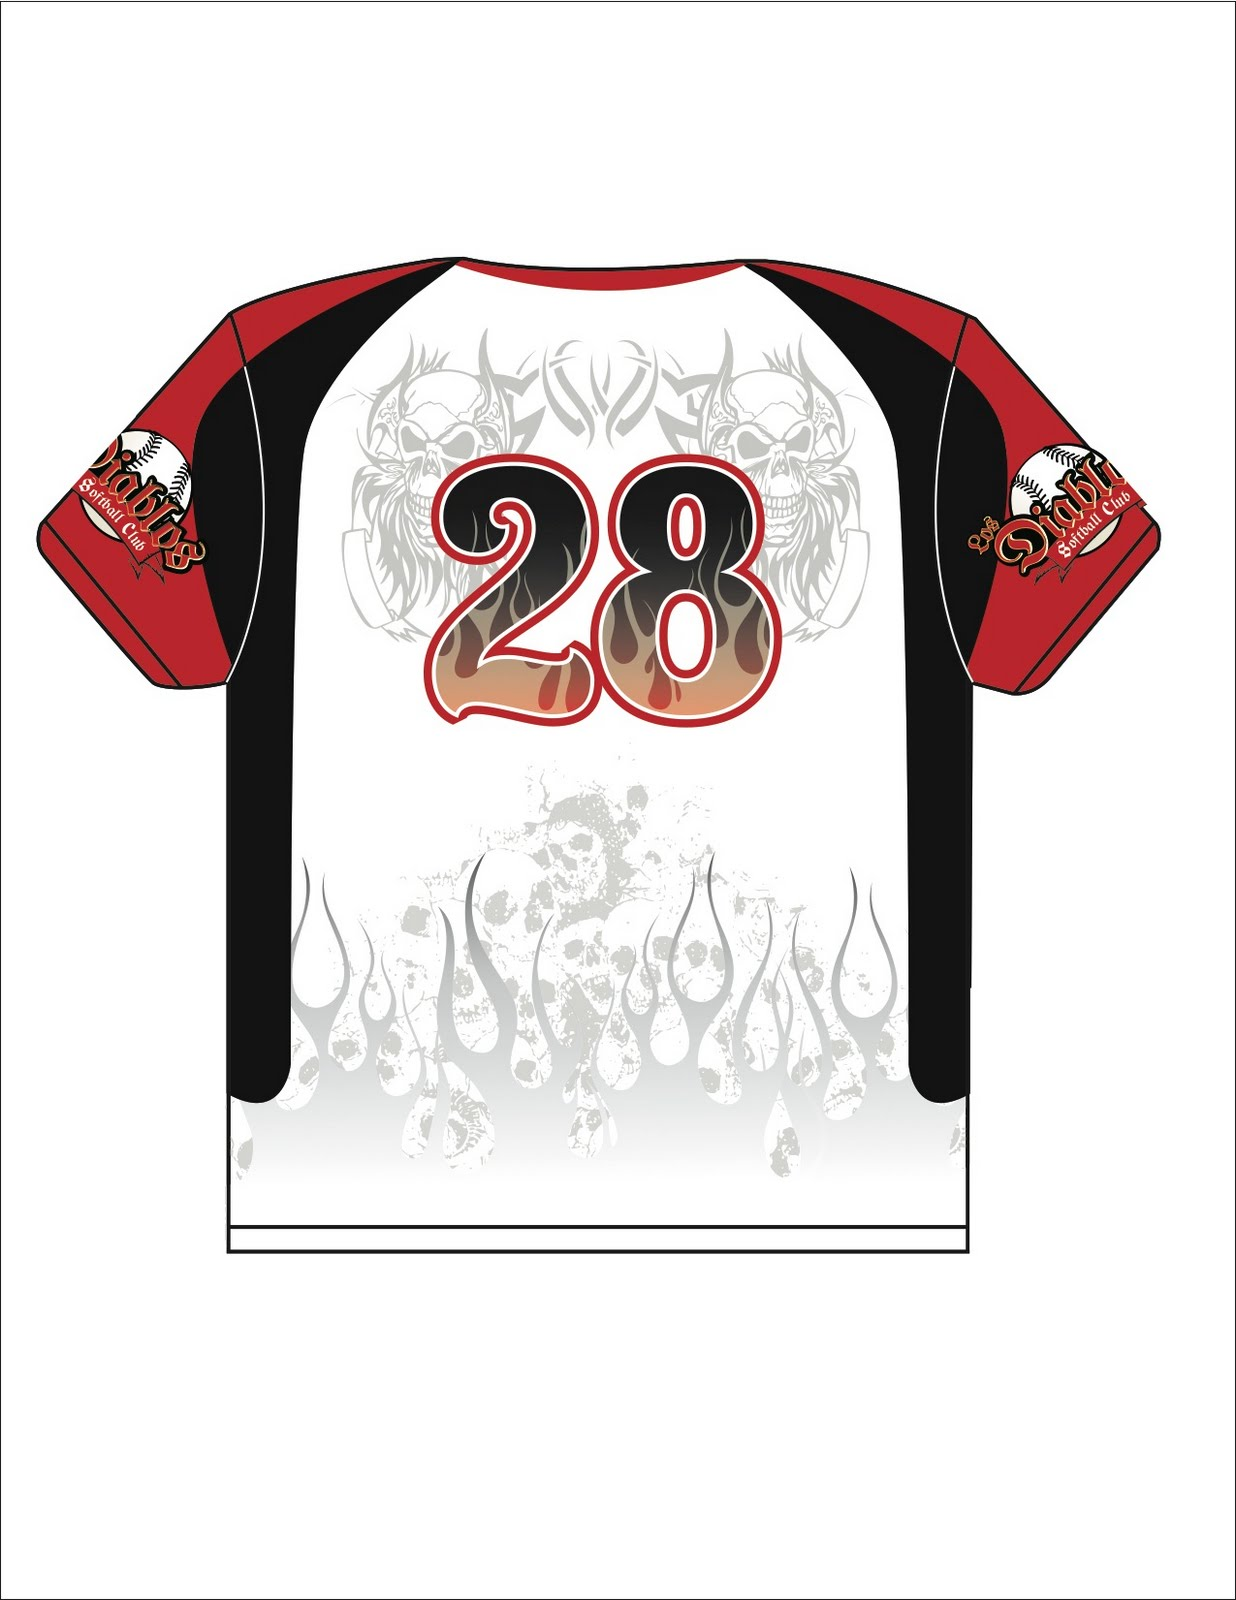 Alex Herrera Graphic Design Los Diablos Softball Jersey Designs. Alex  Herrera Graphic Design Los Diablos Softball Jersey Designs.